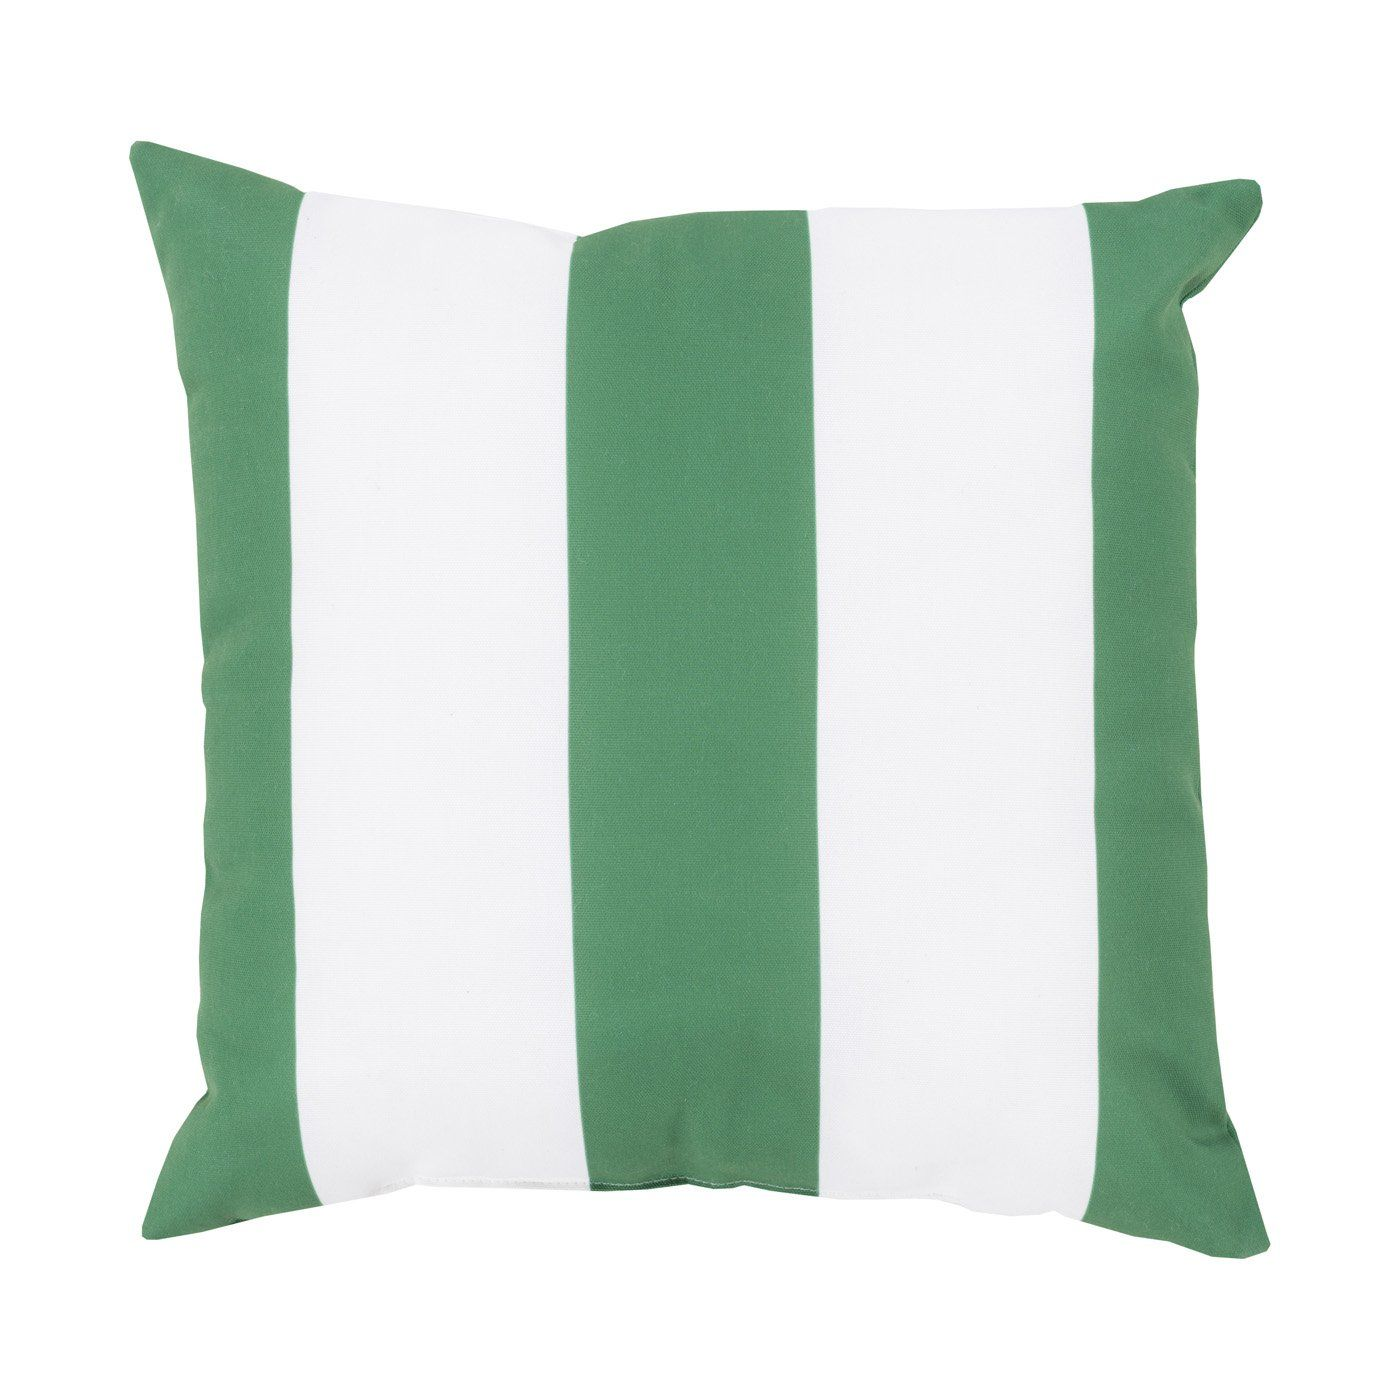 Shop Surya  RG156 Rain Indoor/Outdoor Decorative Pillow at ATG Stores. Browse our outdoor pillows, all with free shipping and best price guaranteed.